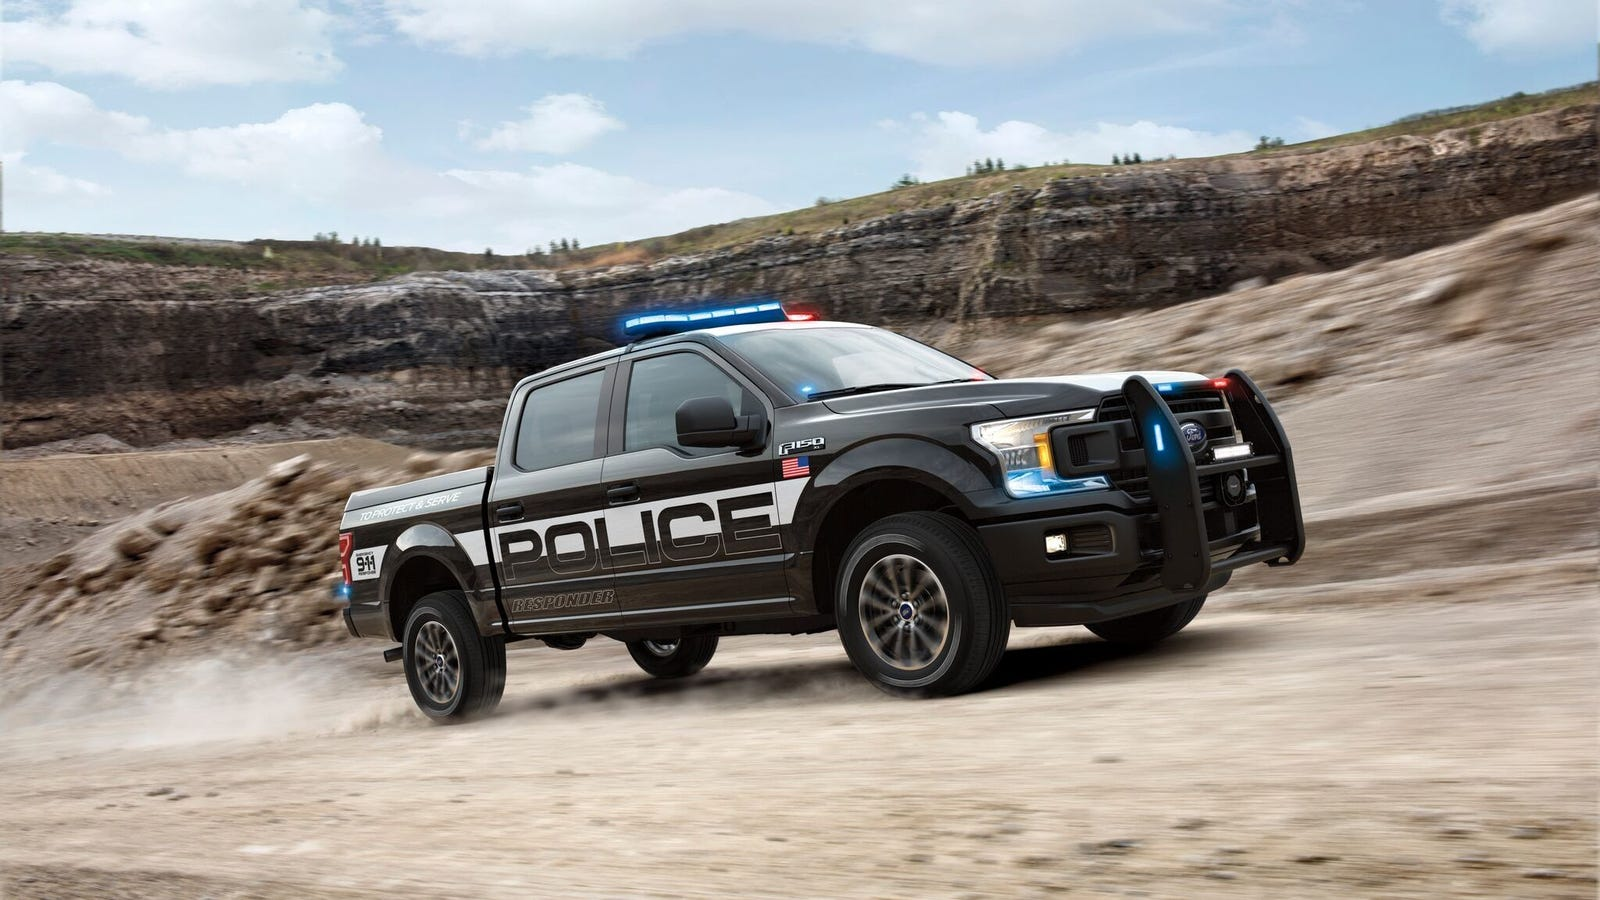 ford has been extremely rude lately developing a new generation of police pursuit vehicles and now its introduced the f 150 police responder